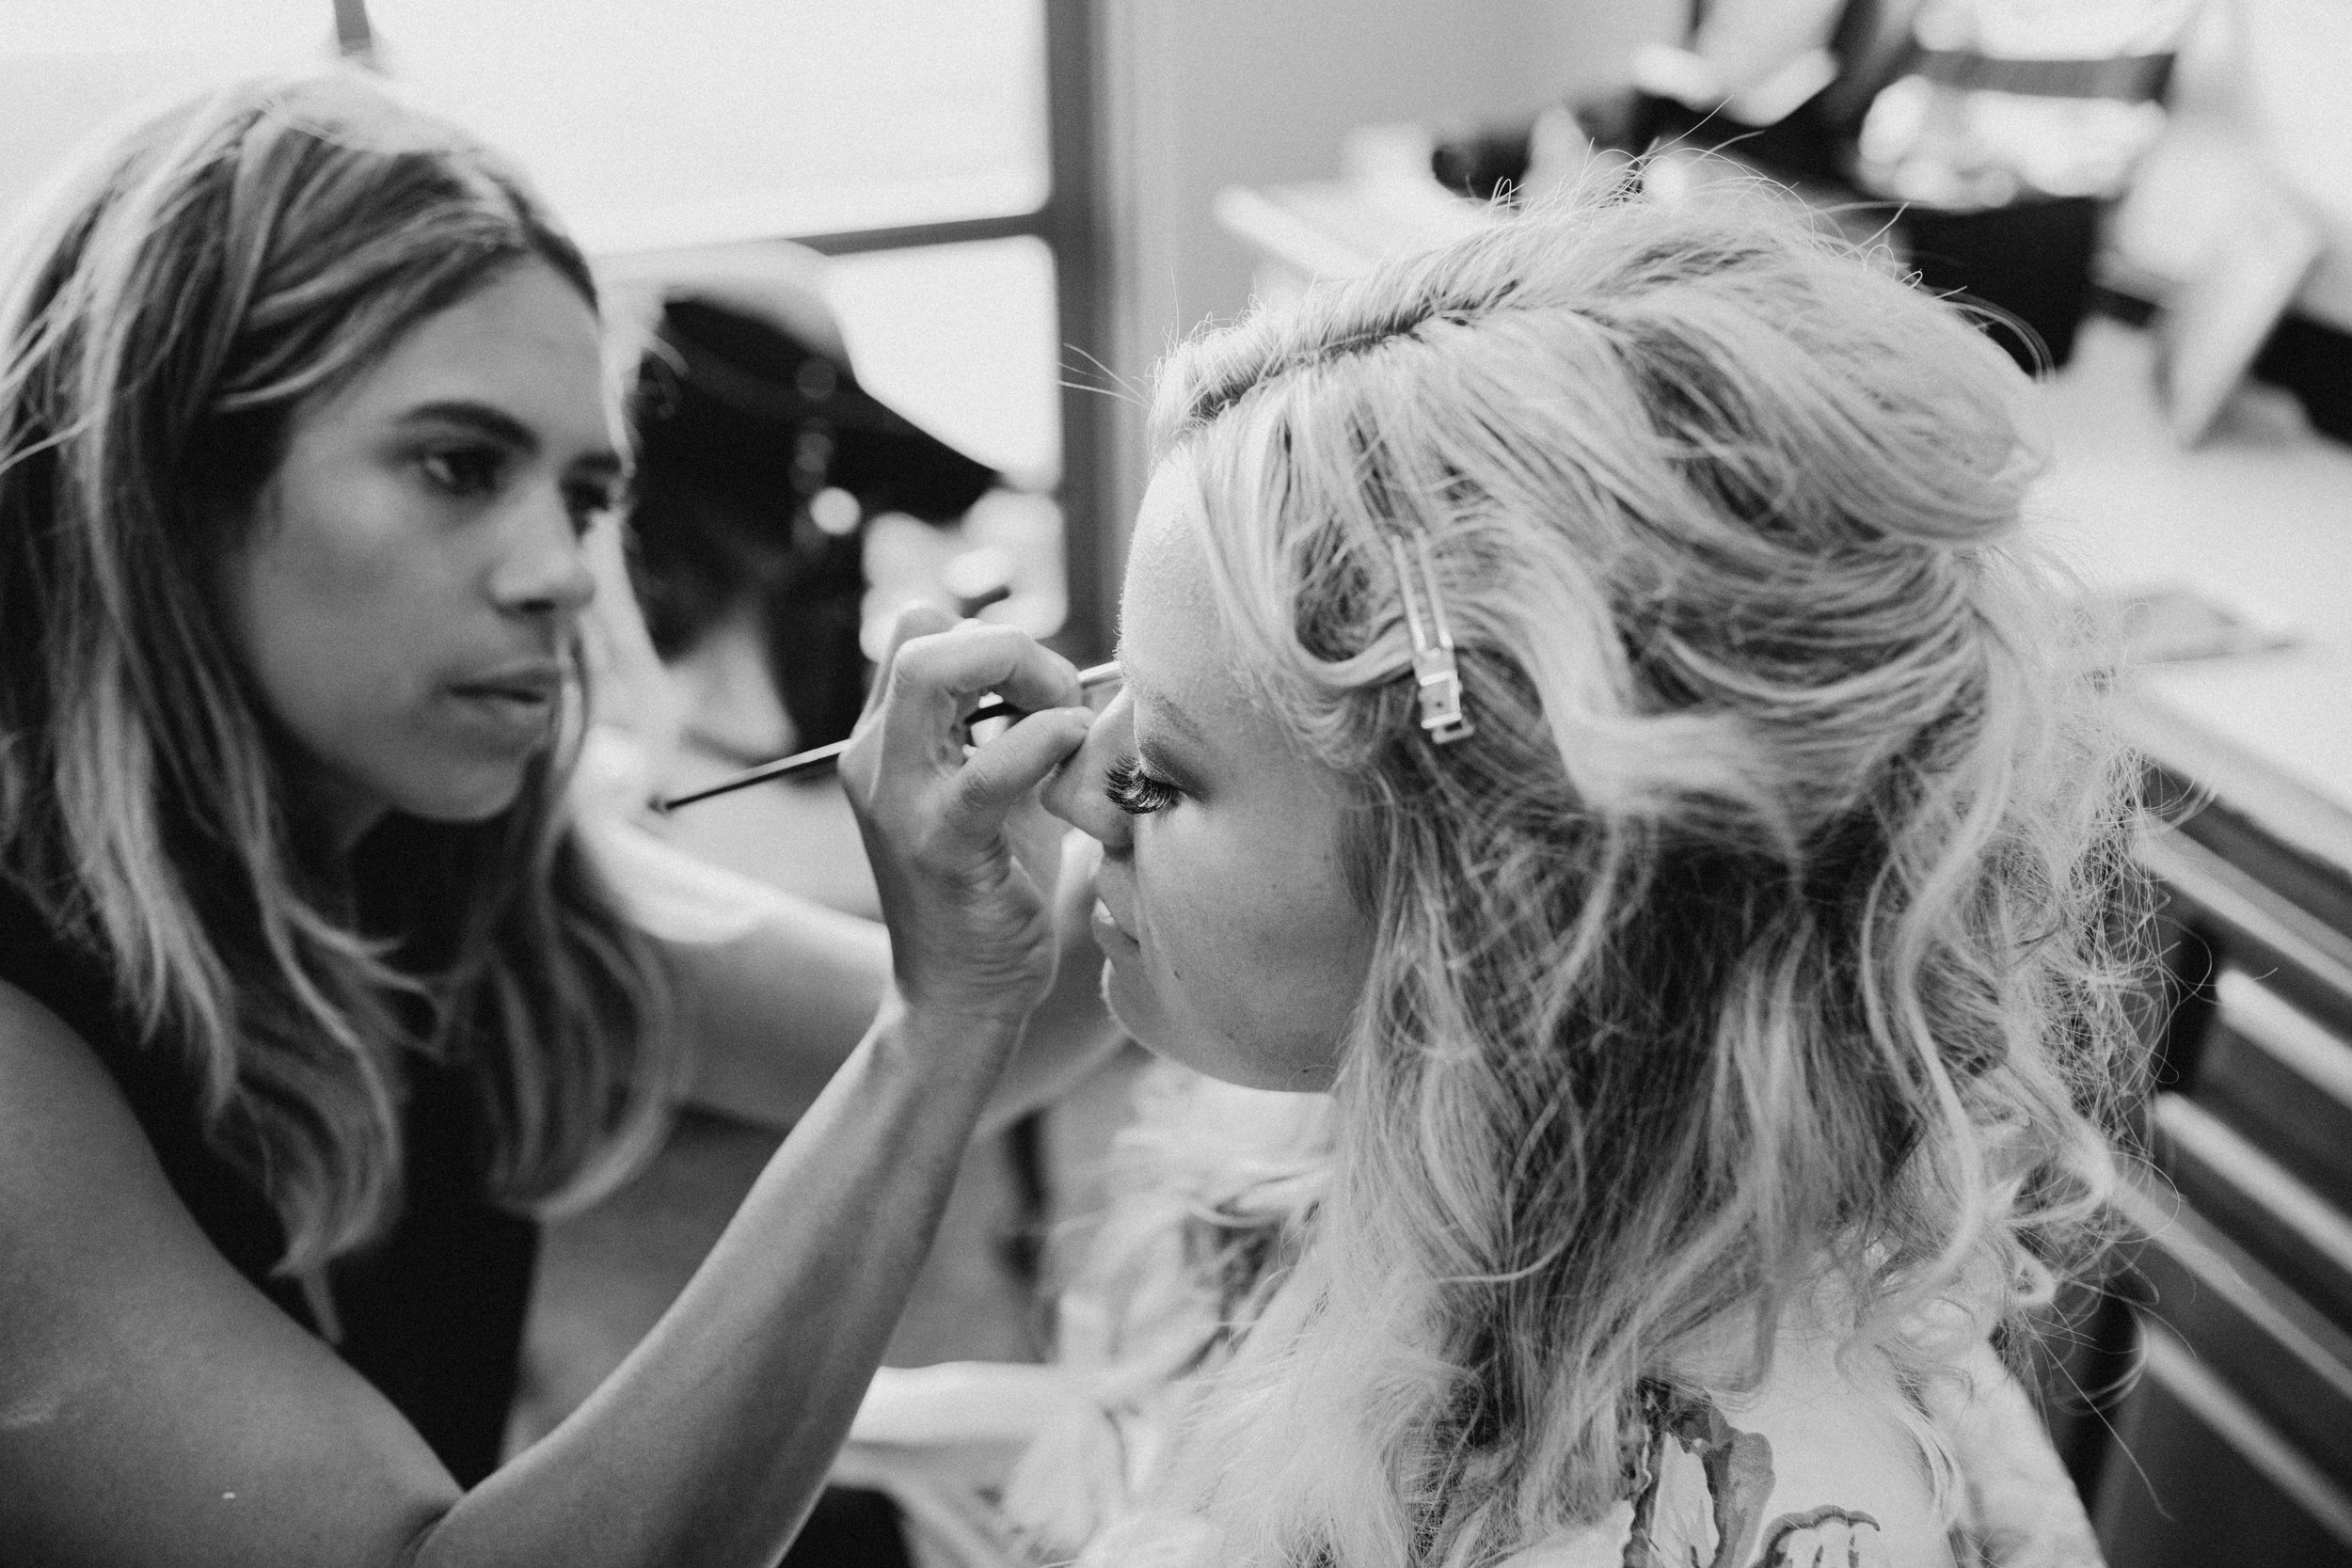 DianaLakePhoto-A+C-Wedding-GettingReady_13.jpg